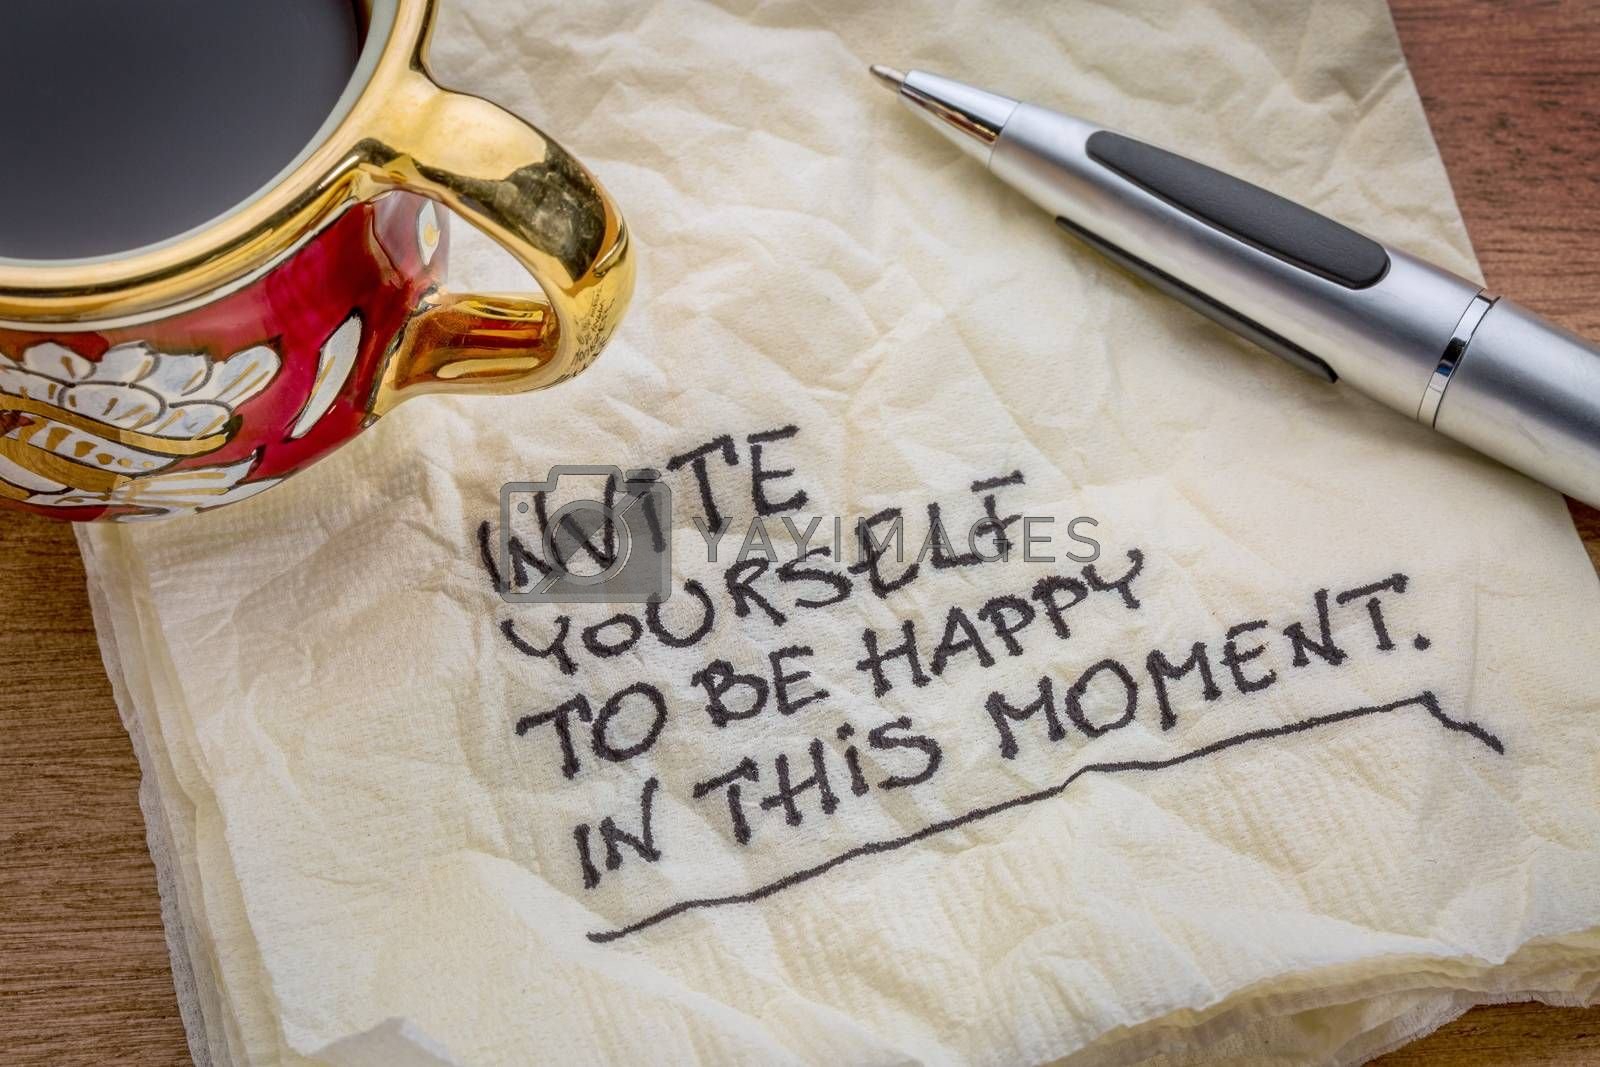 Invite yourself to be happy in this moment - inspirational advice on a napkin with a cup of coffee